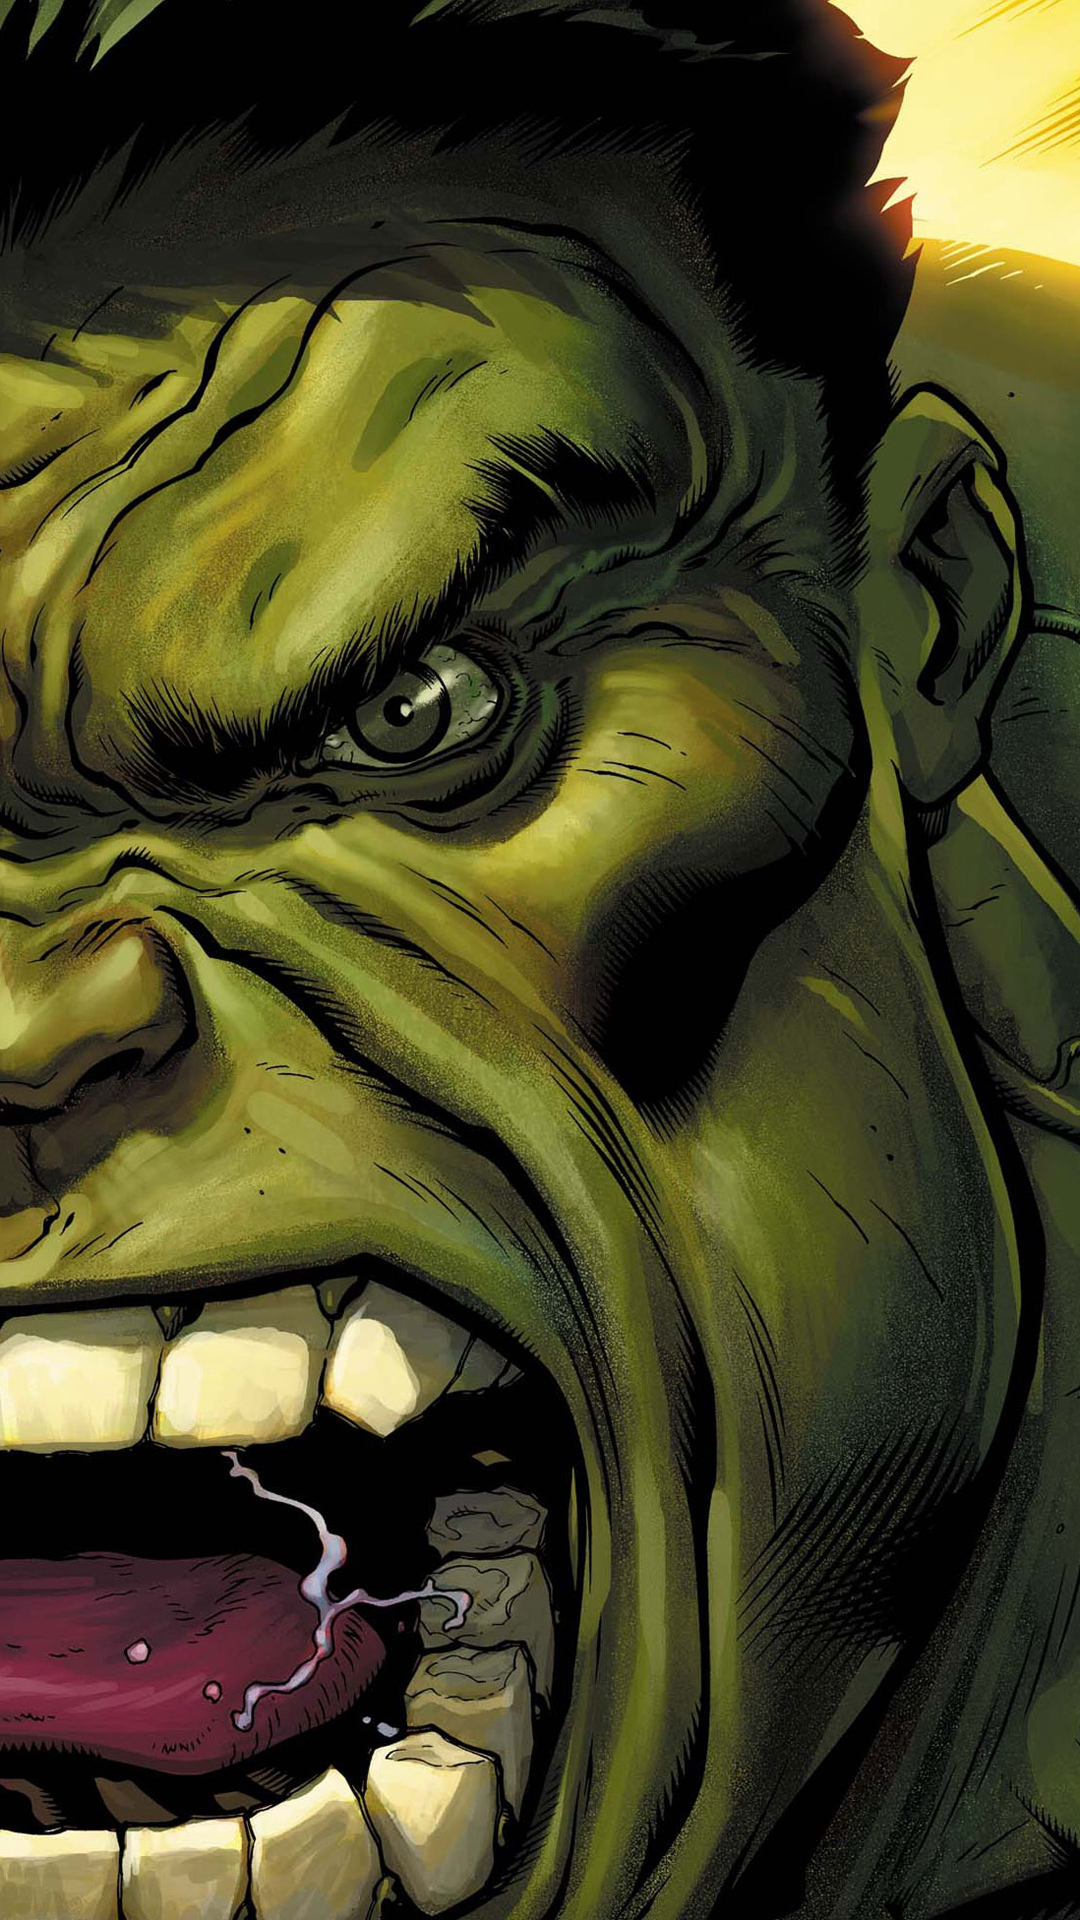 The Avengers Hulk Green Face Htc Hd Wallpaper 33107 Hd